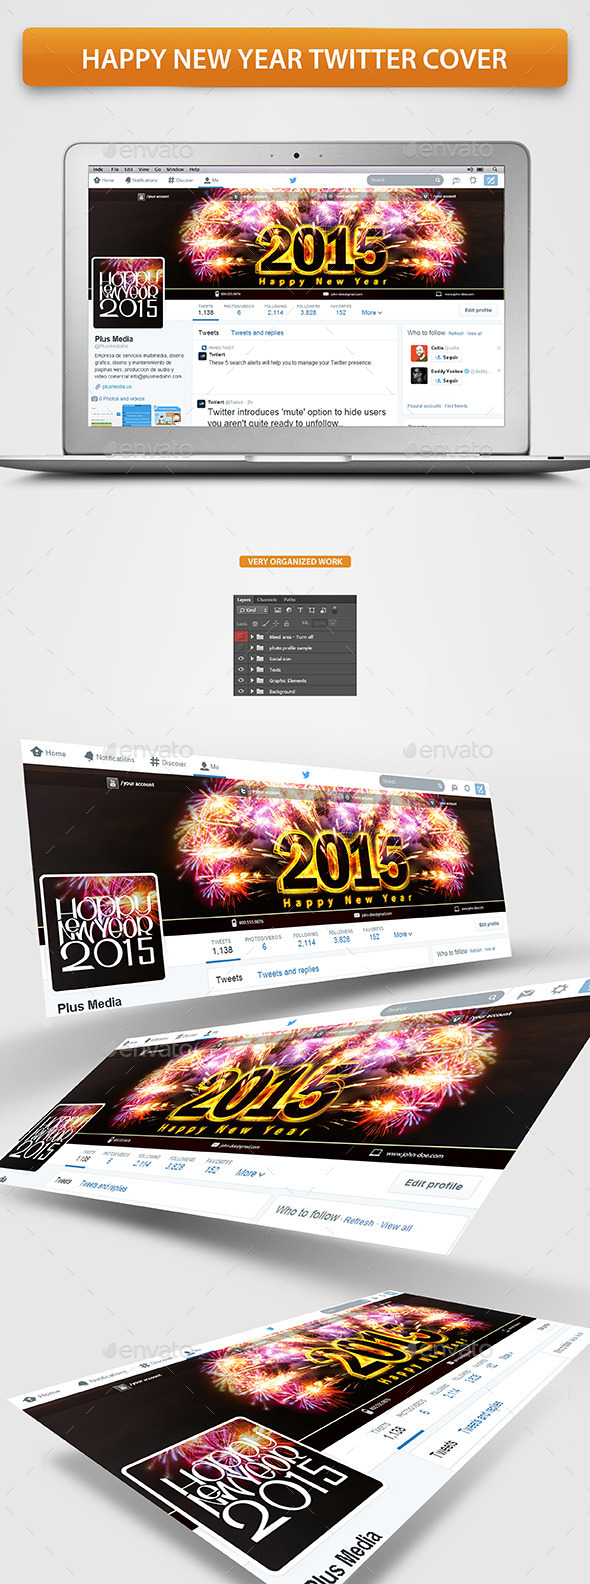 GraphicRiver Happy New Year Twitter Profile Cover 9626244